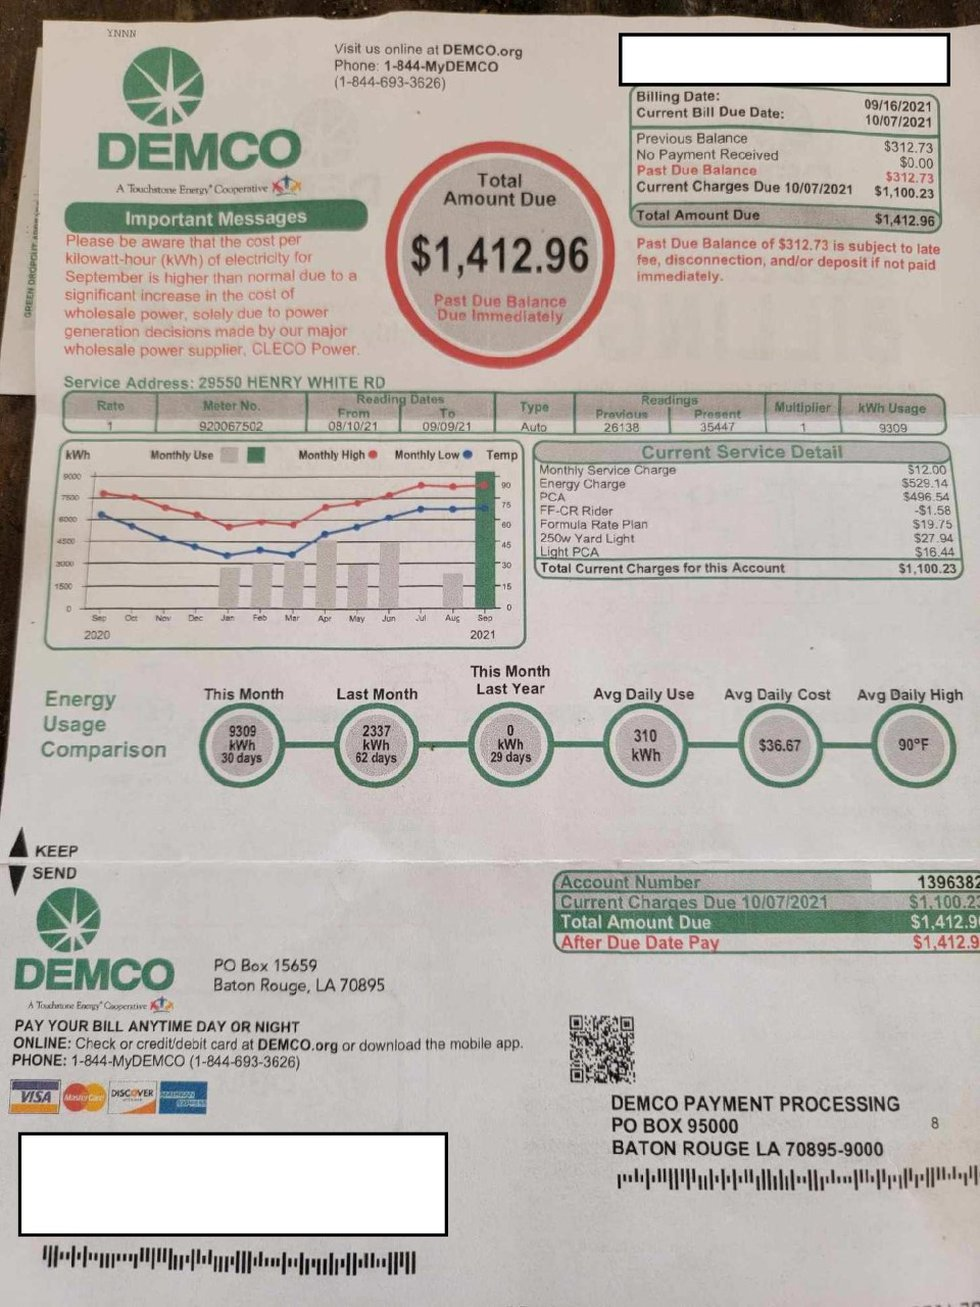 His bill in total he received from DEMCO was $1412.96.